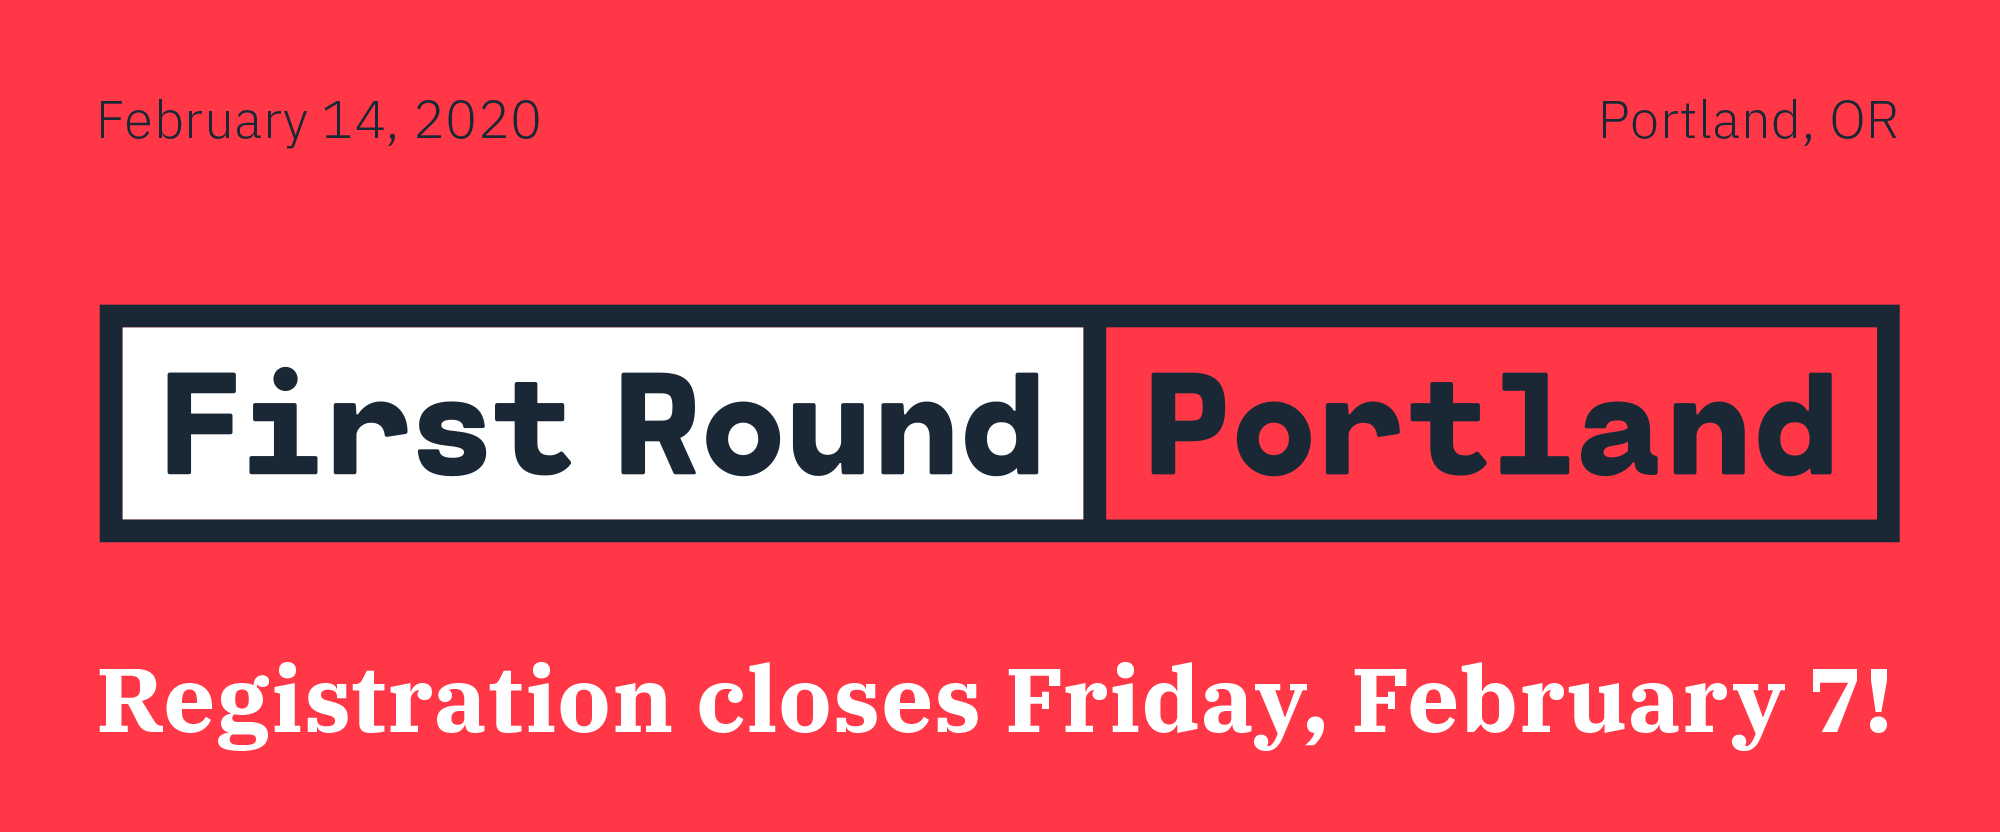 First Round 2020 - Portland: Registration Closes this Friday